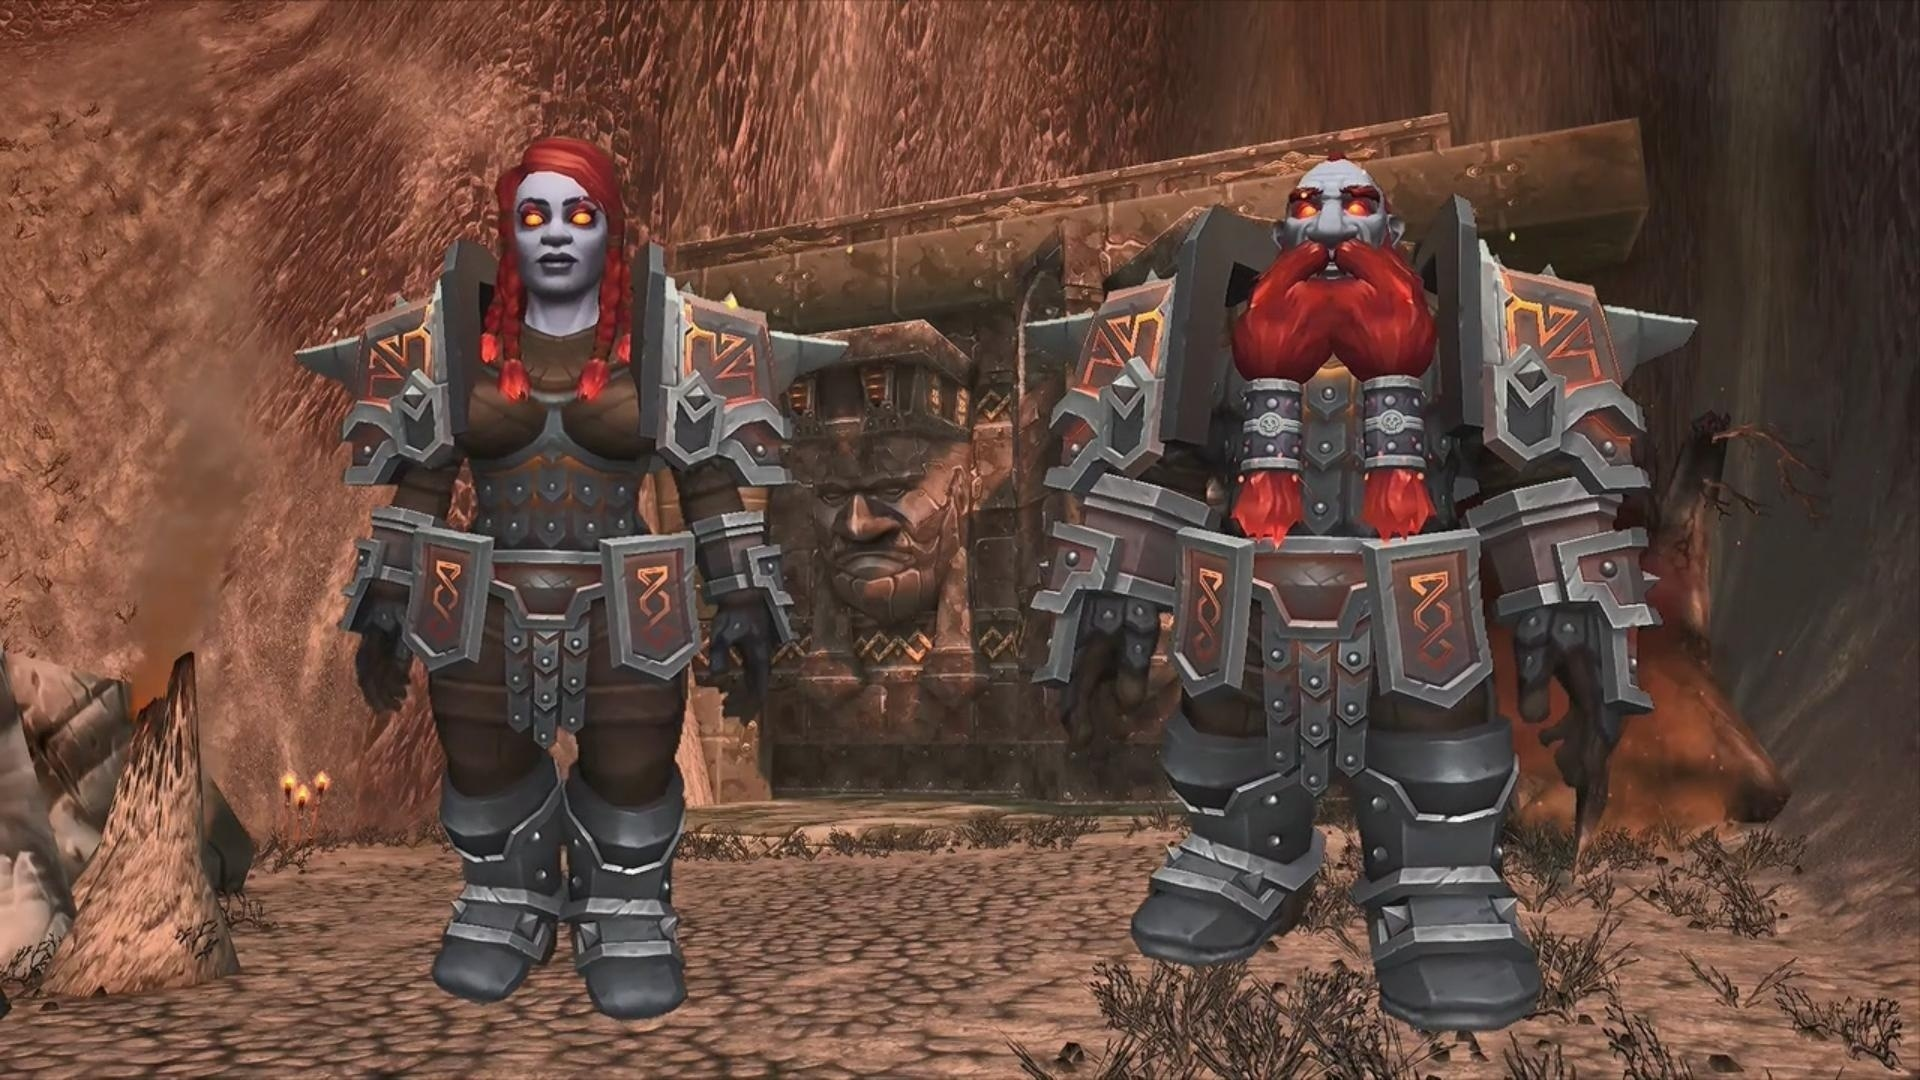 Battle for Azeroth Alpha Build 26367 - Dark Iron Dwarf & Mag'har Orc